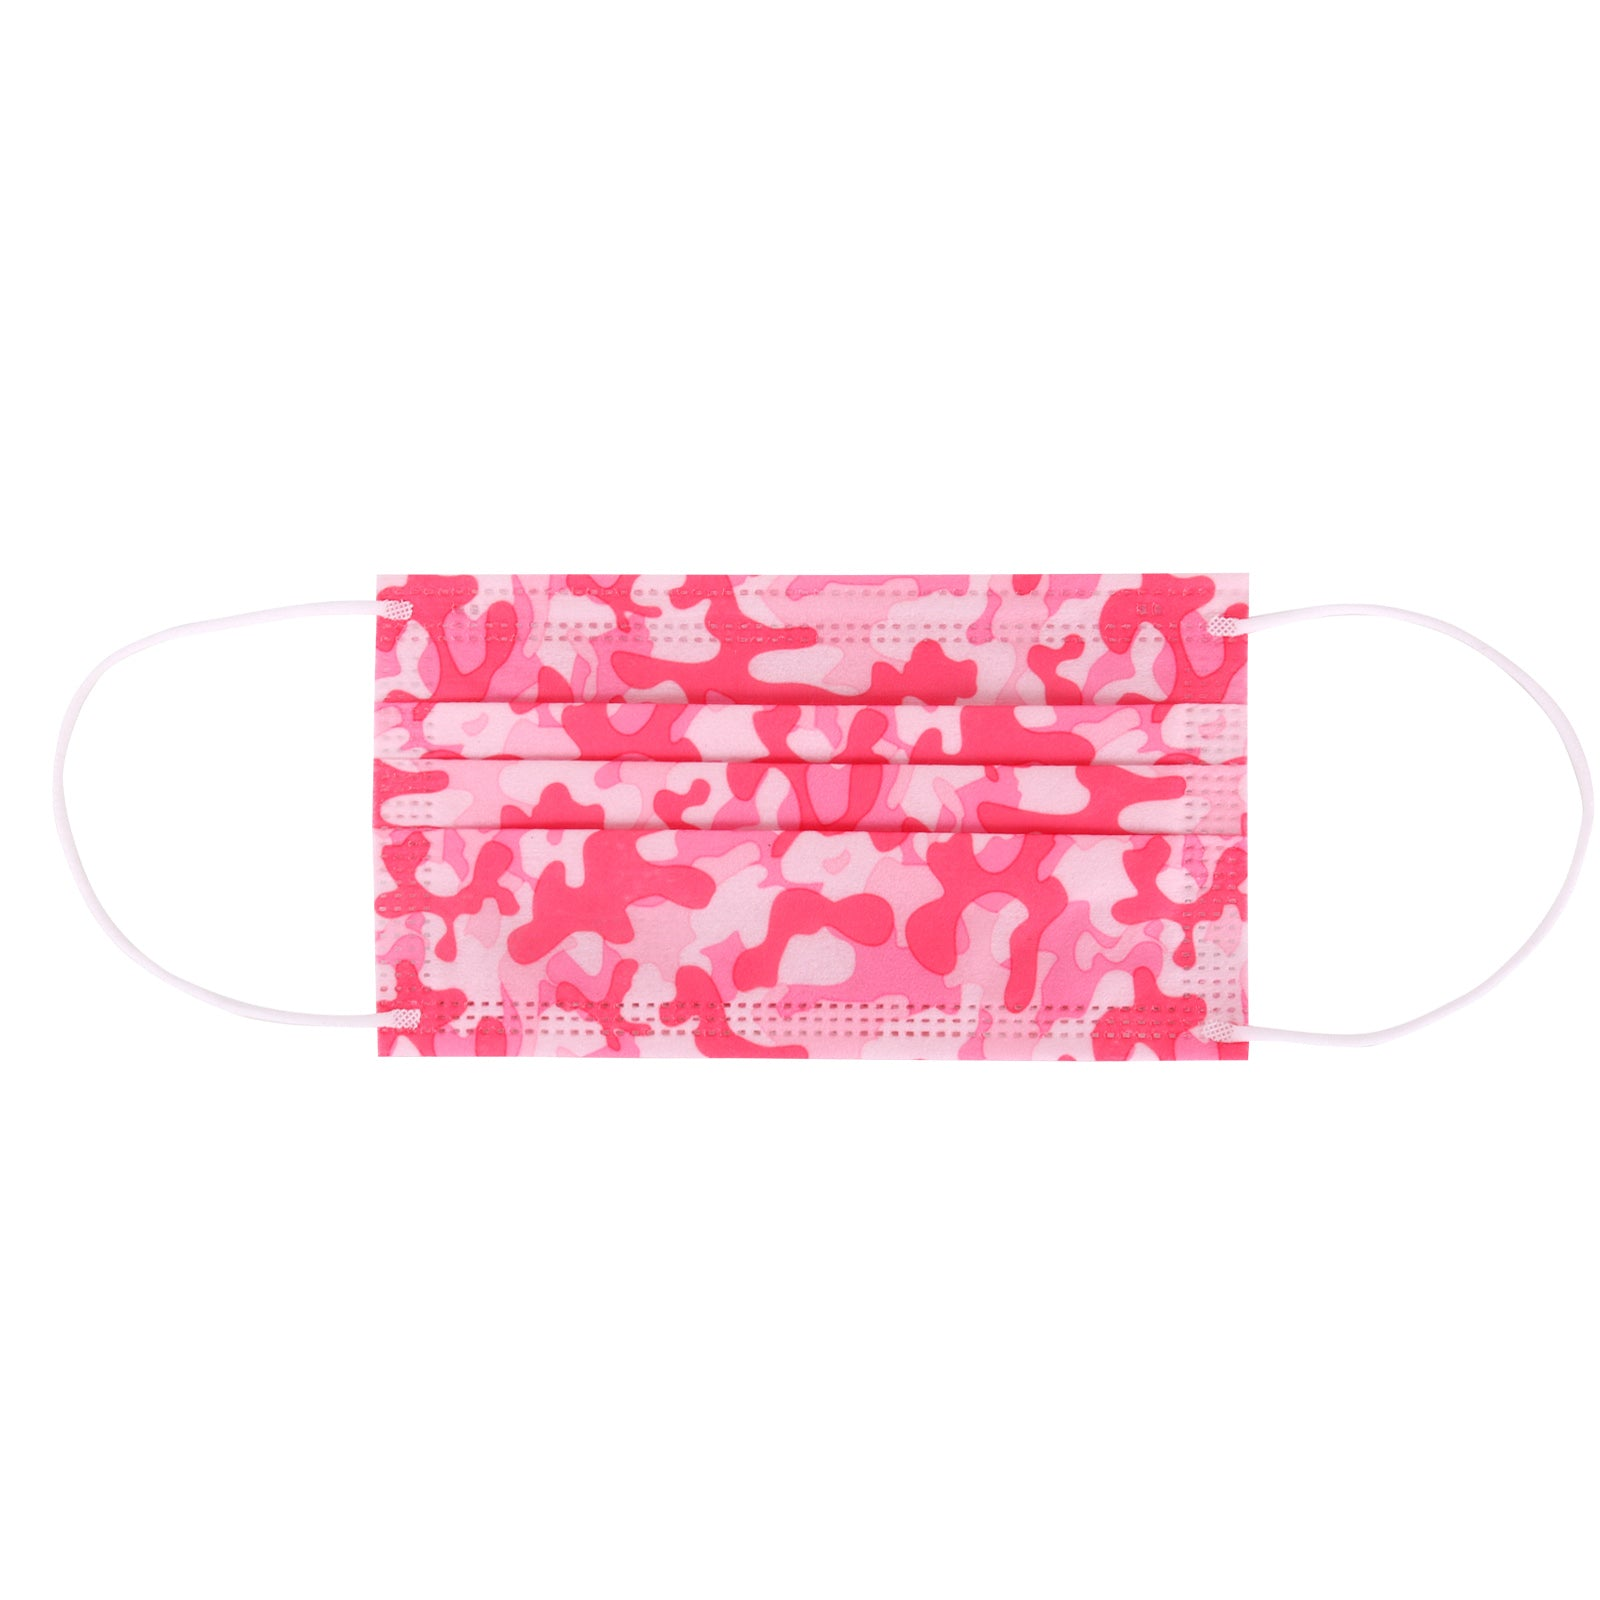 FX-FMPK1211-5PACK American Bling 50Pcs (5 x 10Pcs Pack) Pink Camo Print 3Ply Disposable Face Masks (Non-Medical)